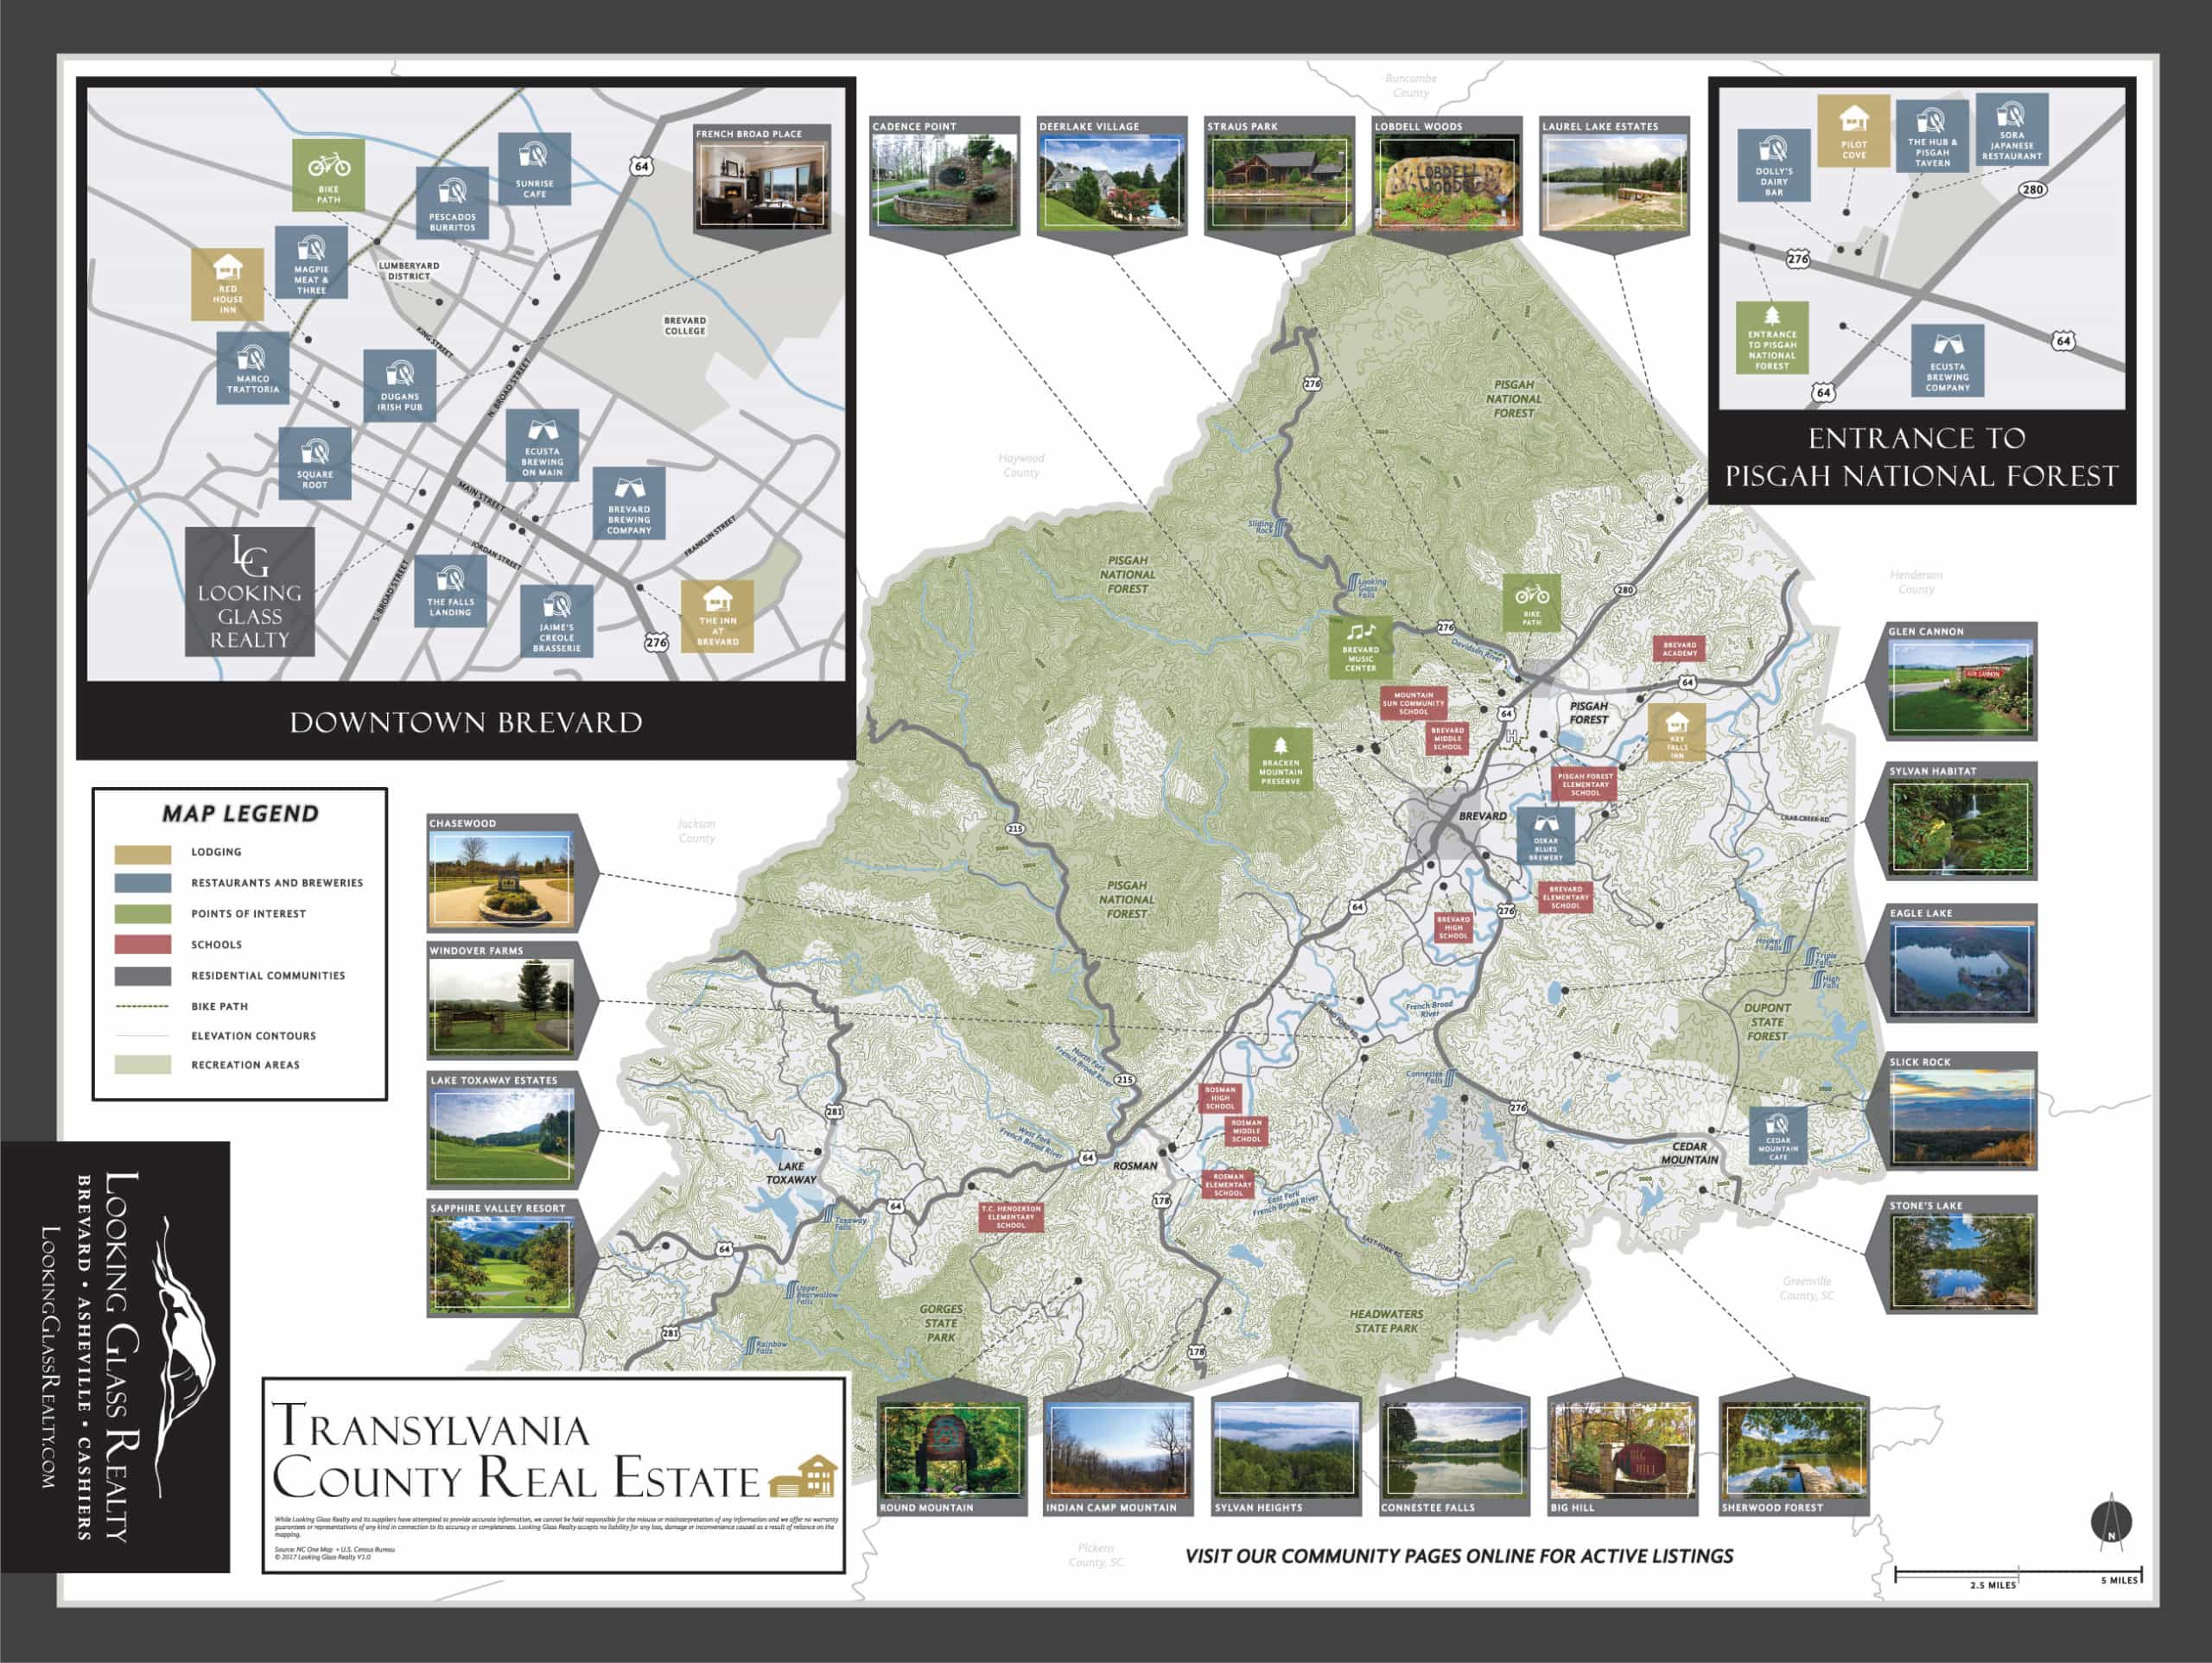 Looking_Glass_Transylvania-County-Map-12-17-2019